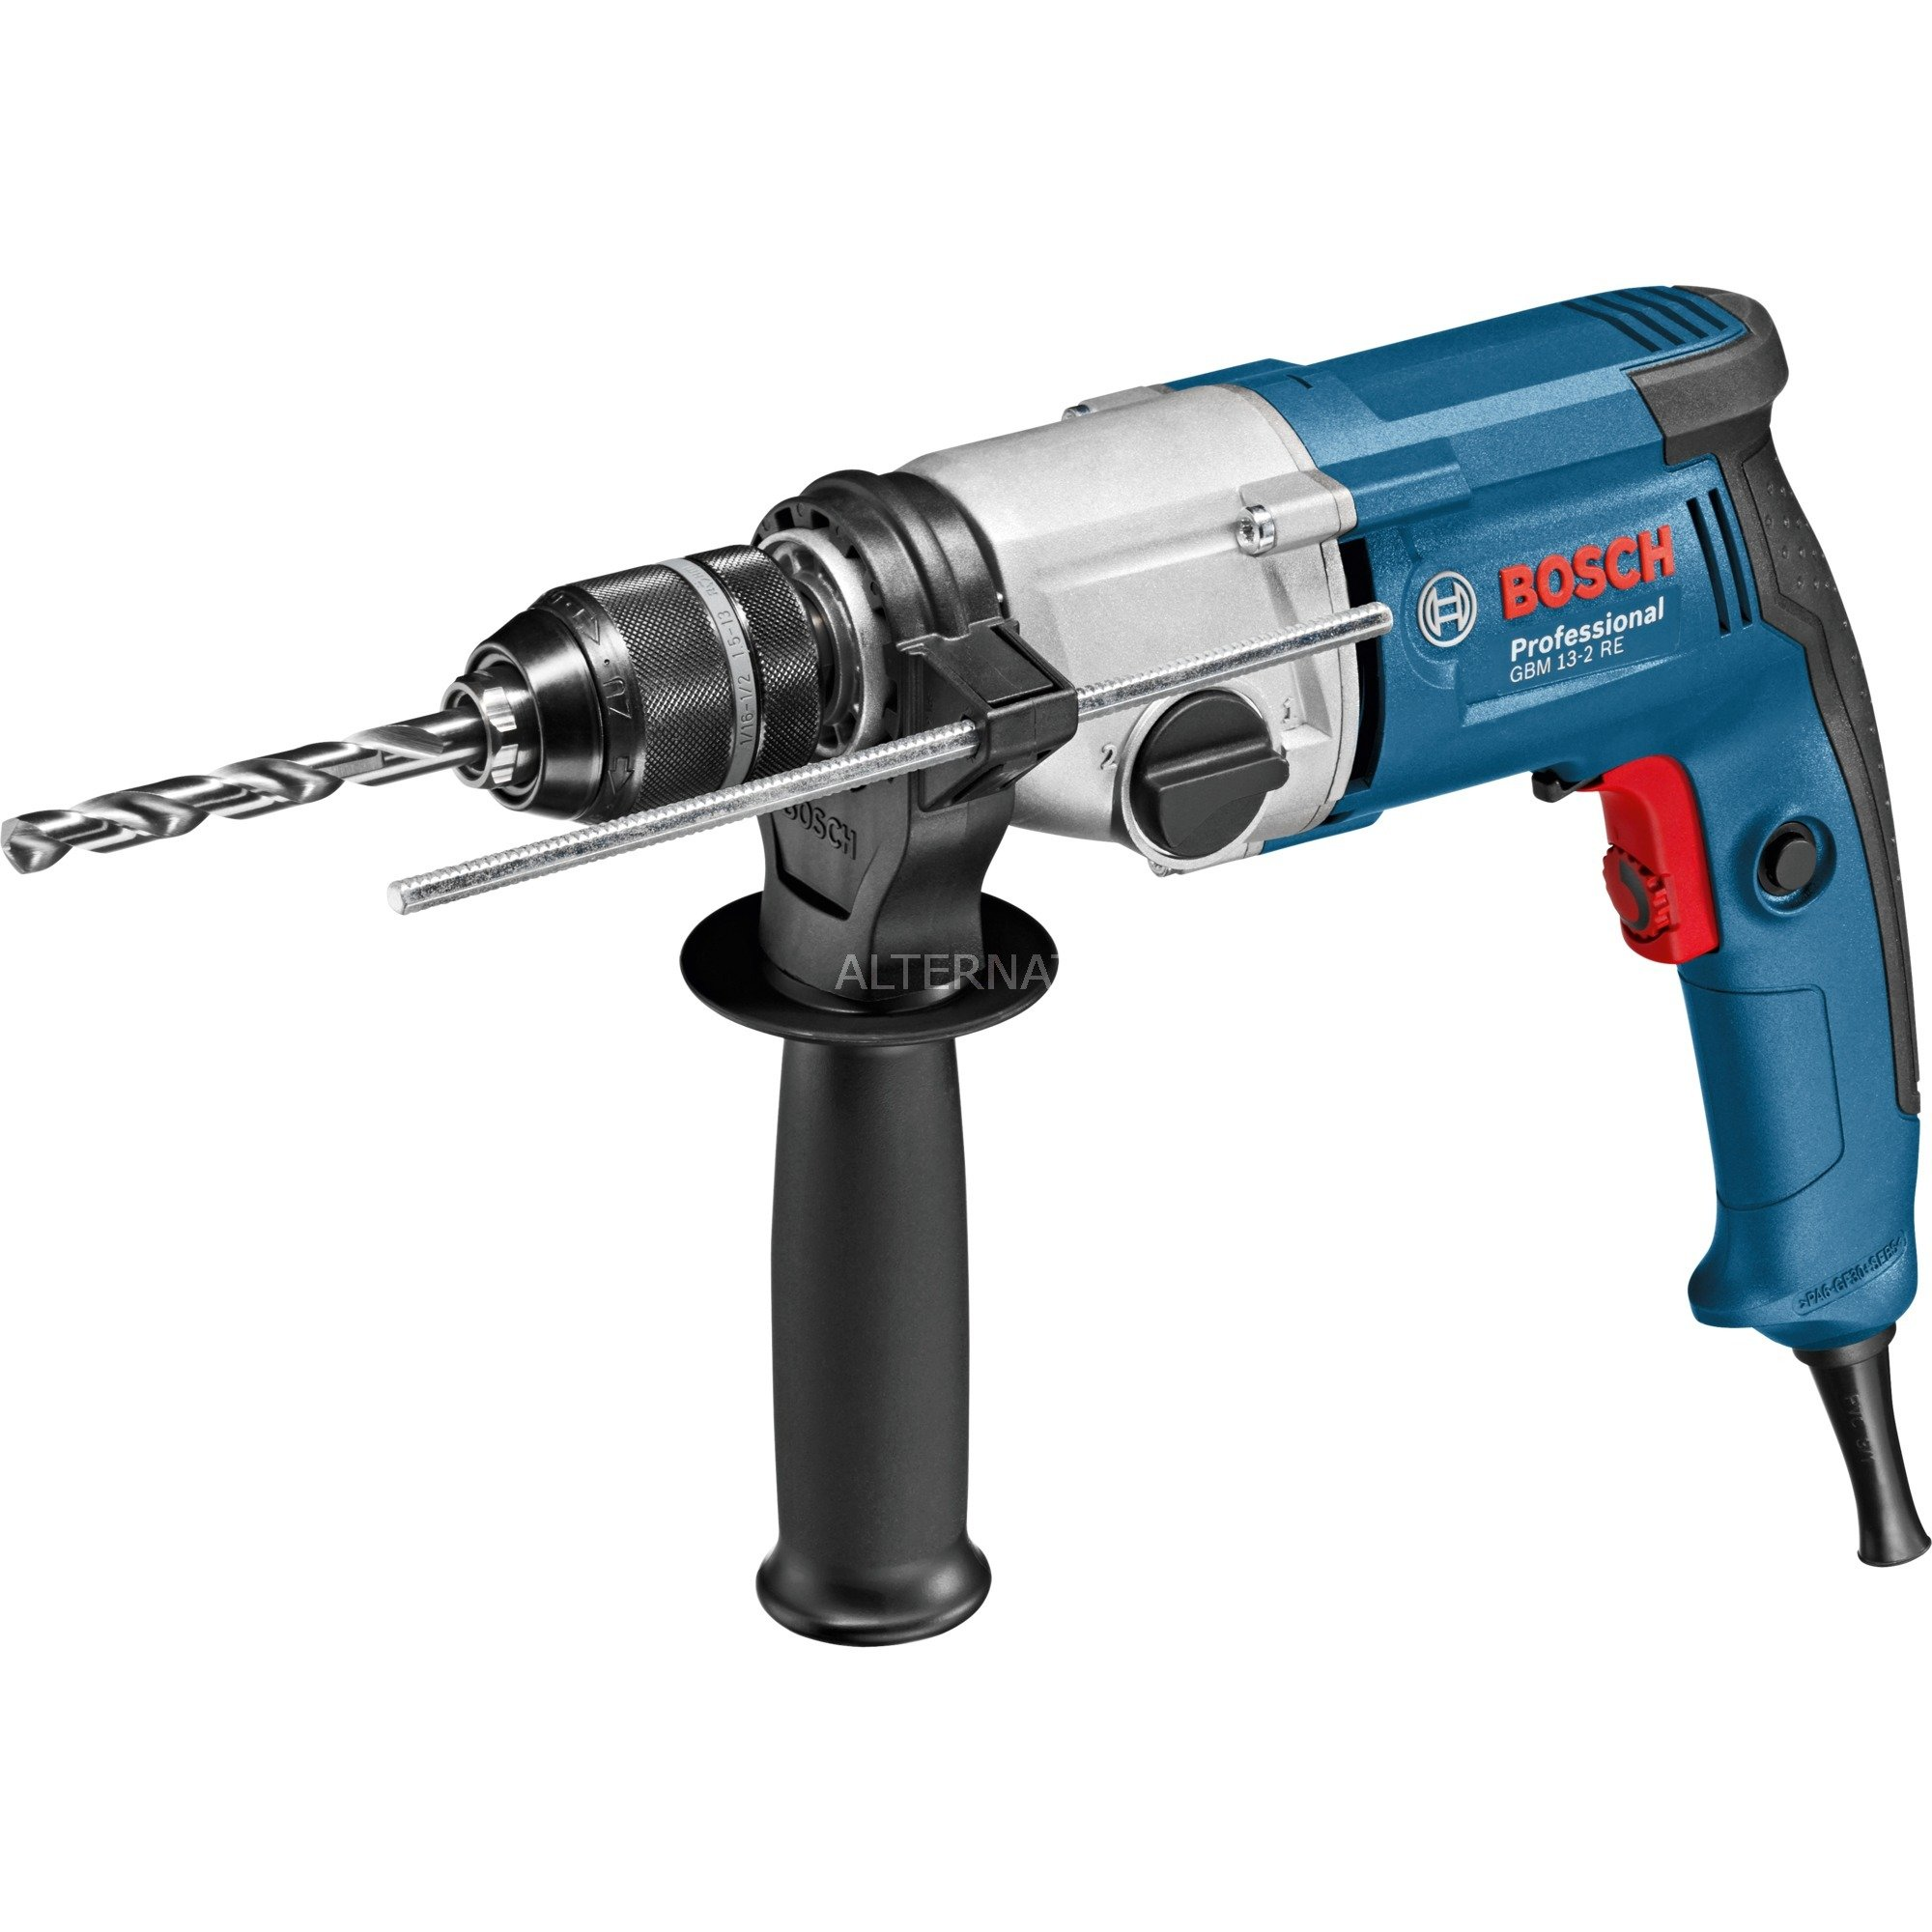 GBM 13-2 RE Professional taladro eléctrico Negro, Azul, Acero inoxidable 3000 RPM 750 W 2,4 kg